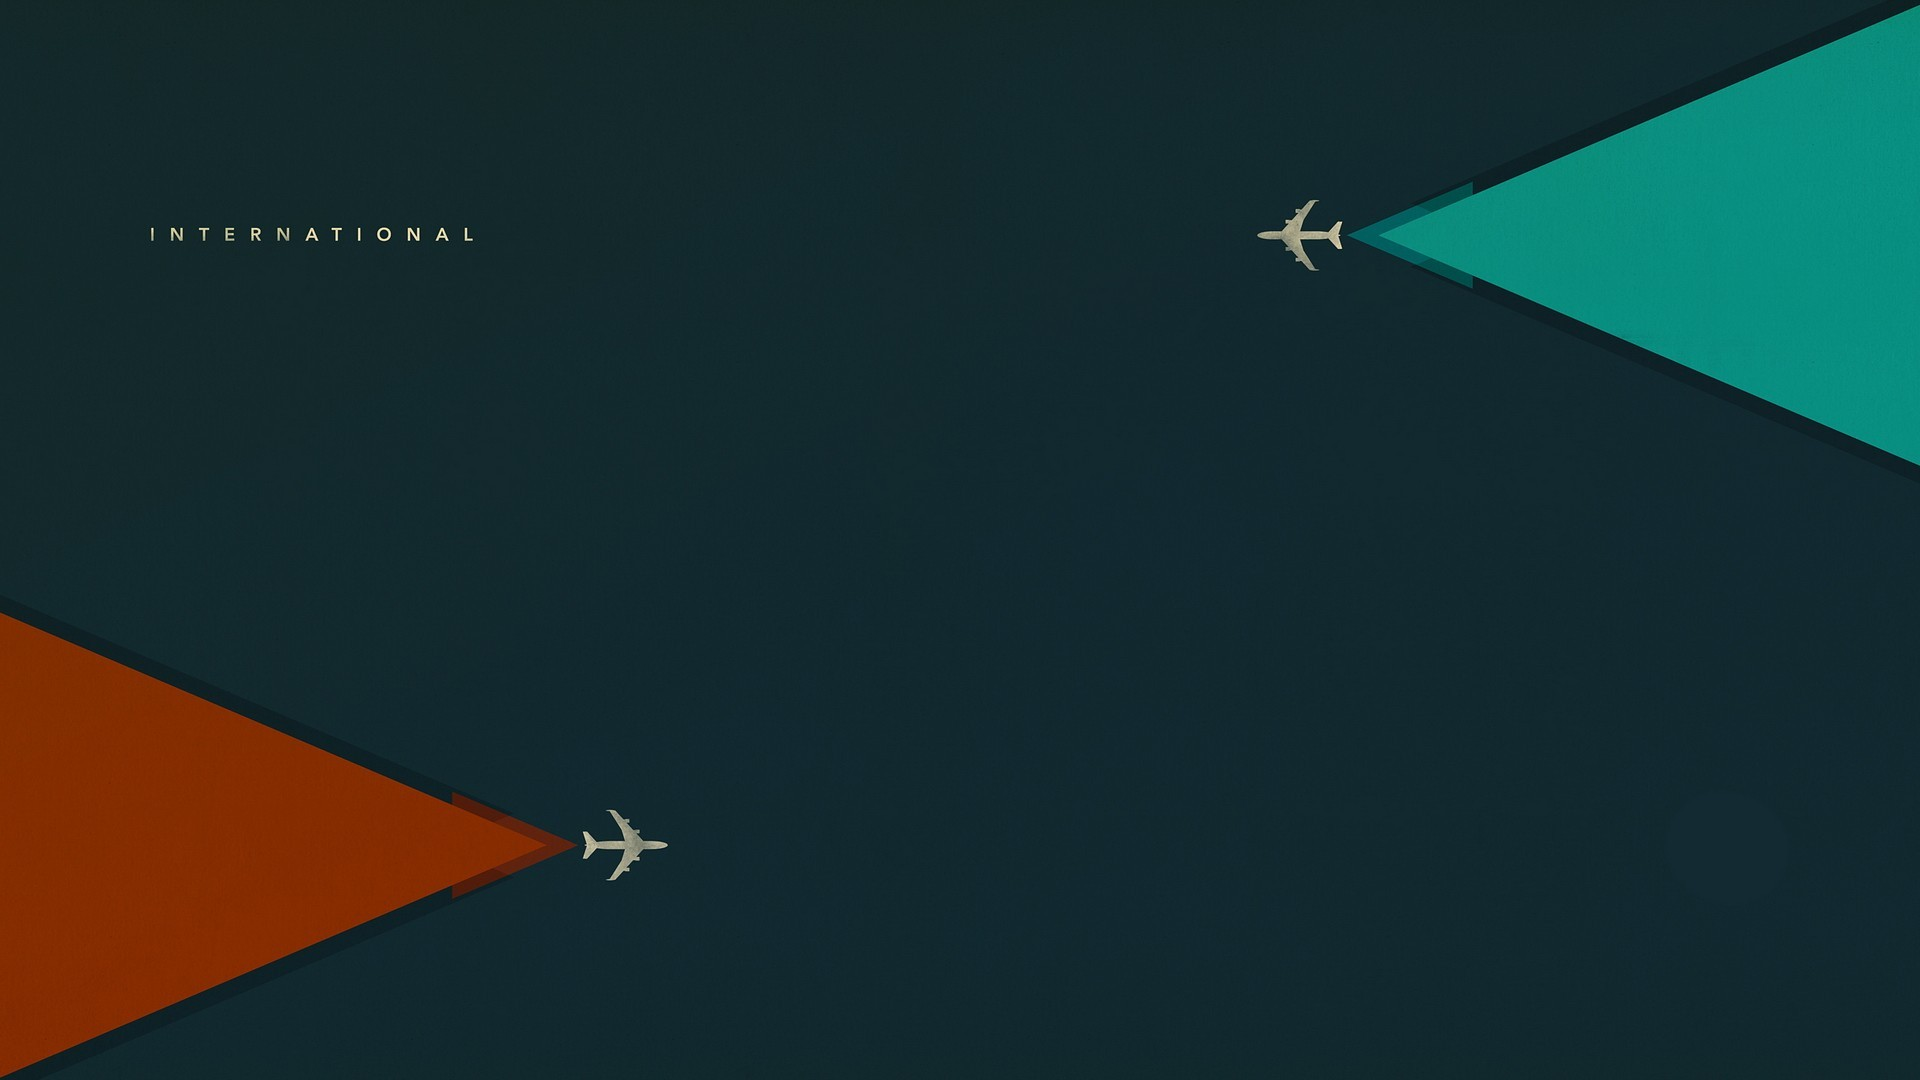 Airplane minimalism hd planes 4k wallpapers images - Minimalist 4k wallpaper ...